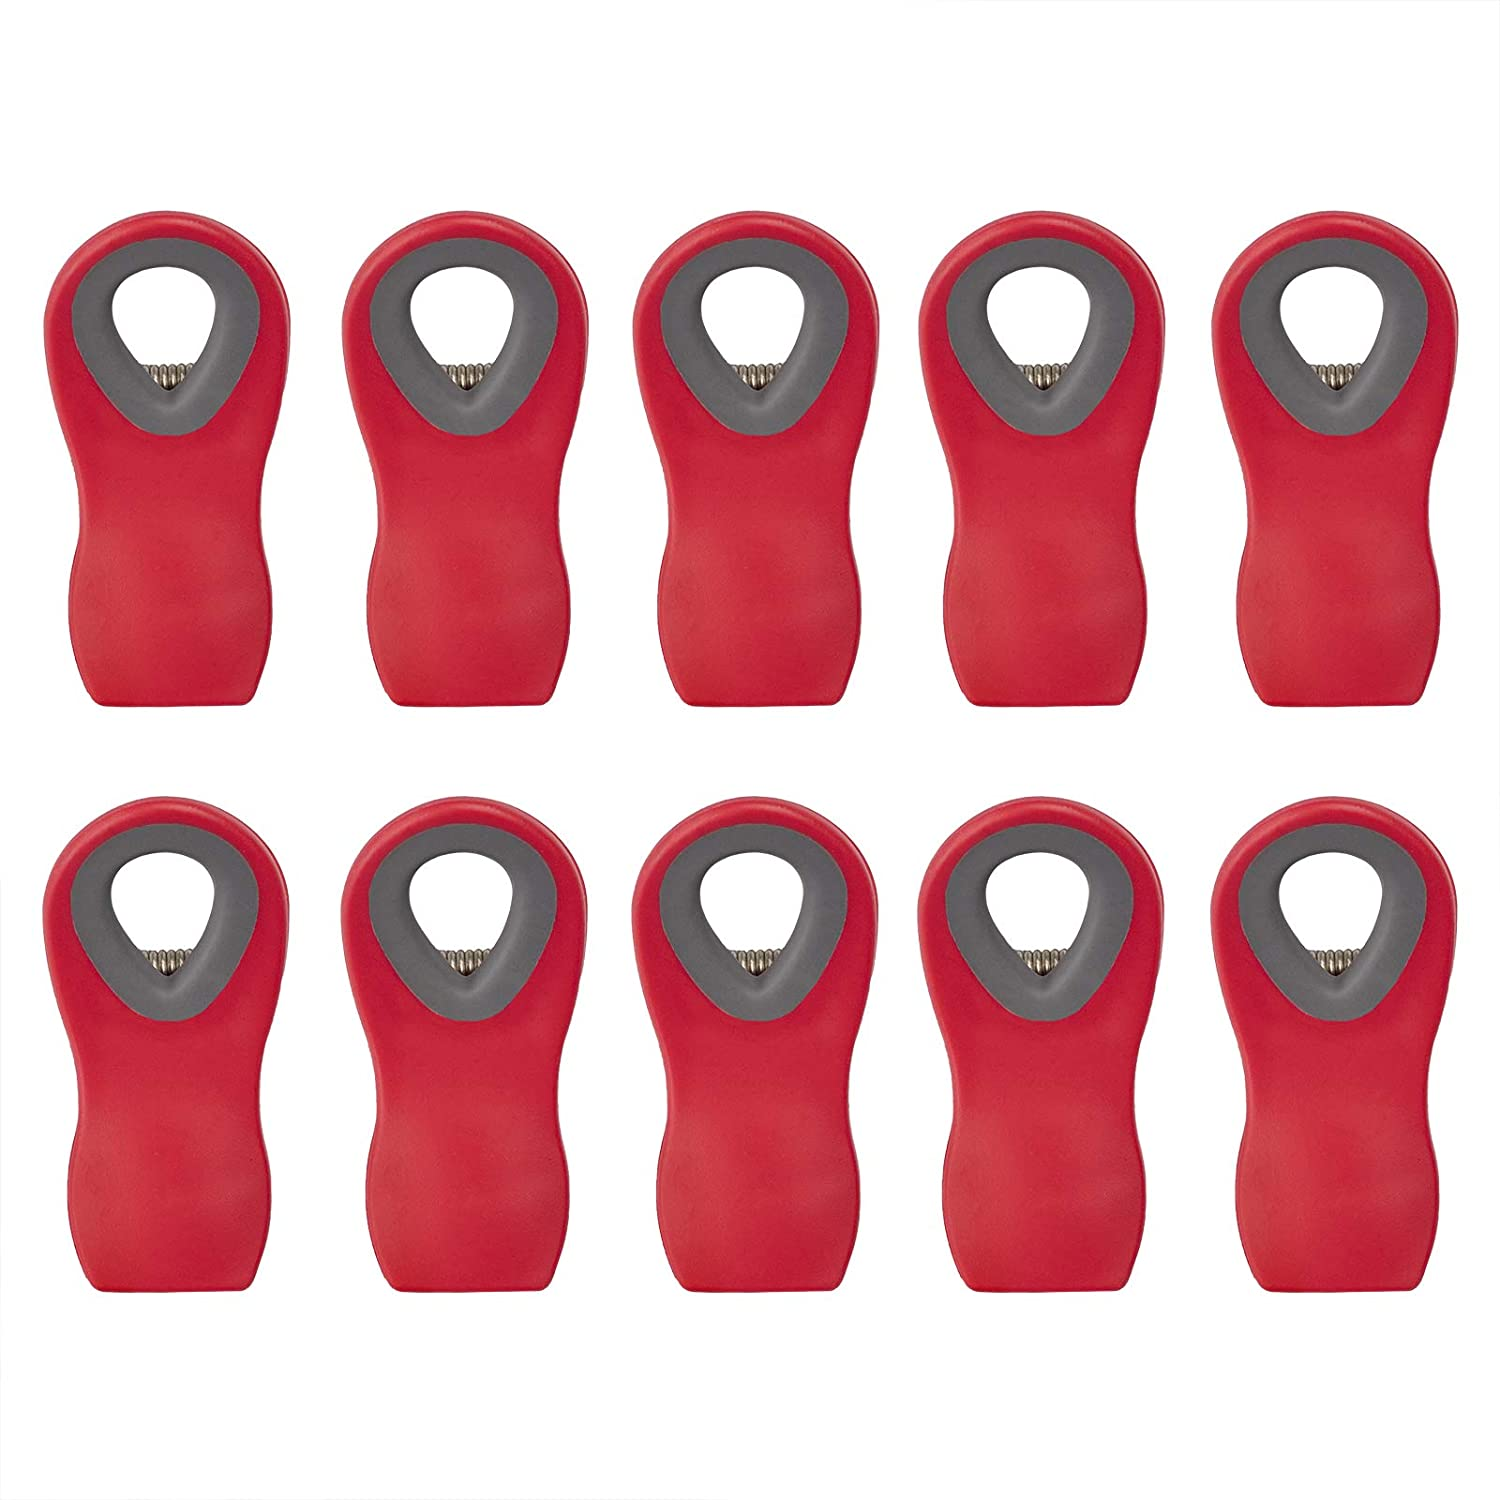 Cook with Color 10 Pc Bag Clips with Magnet, Food Clips, Chip Clips, Bag Clips for Food Storage with Air Tight Seal Grip for Bread Bags, Snack Bags and Food Bags (Red)